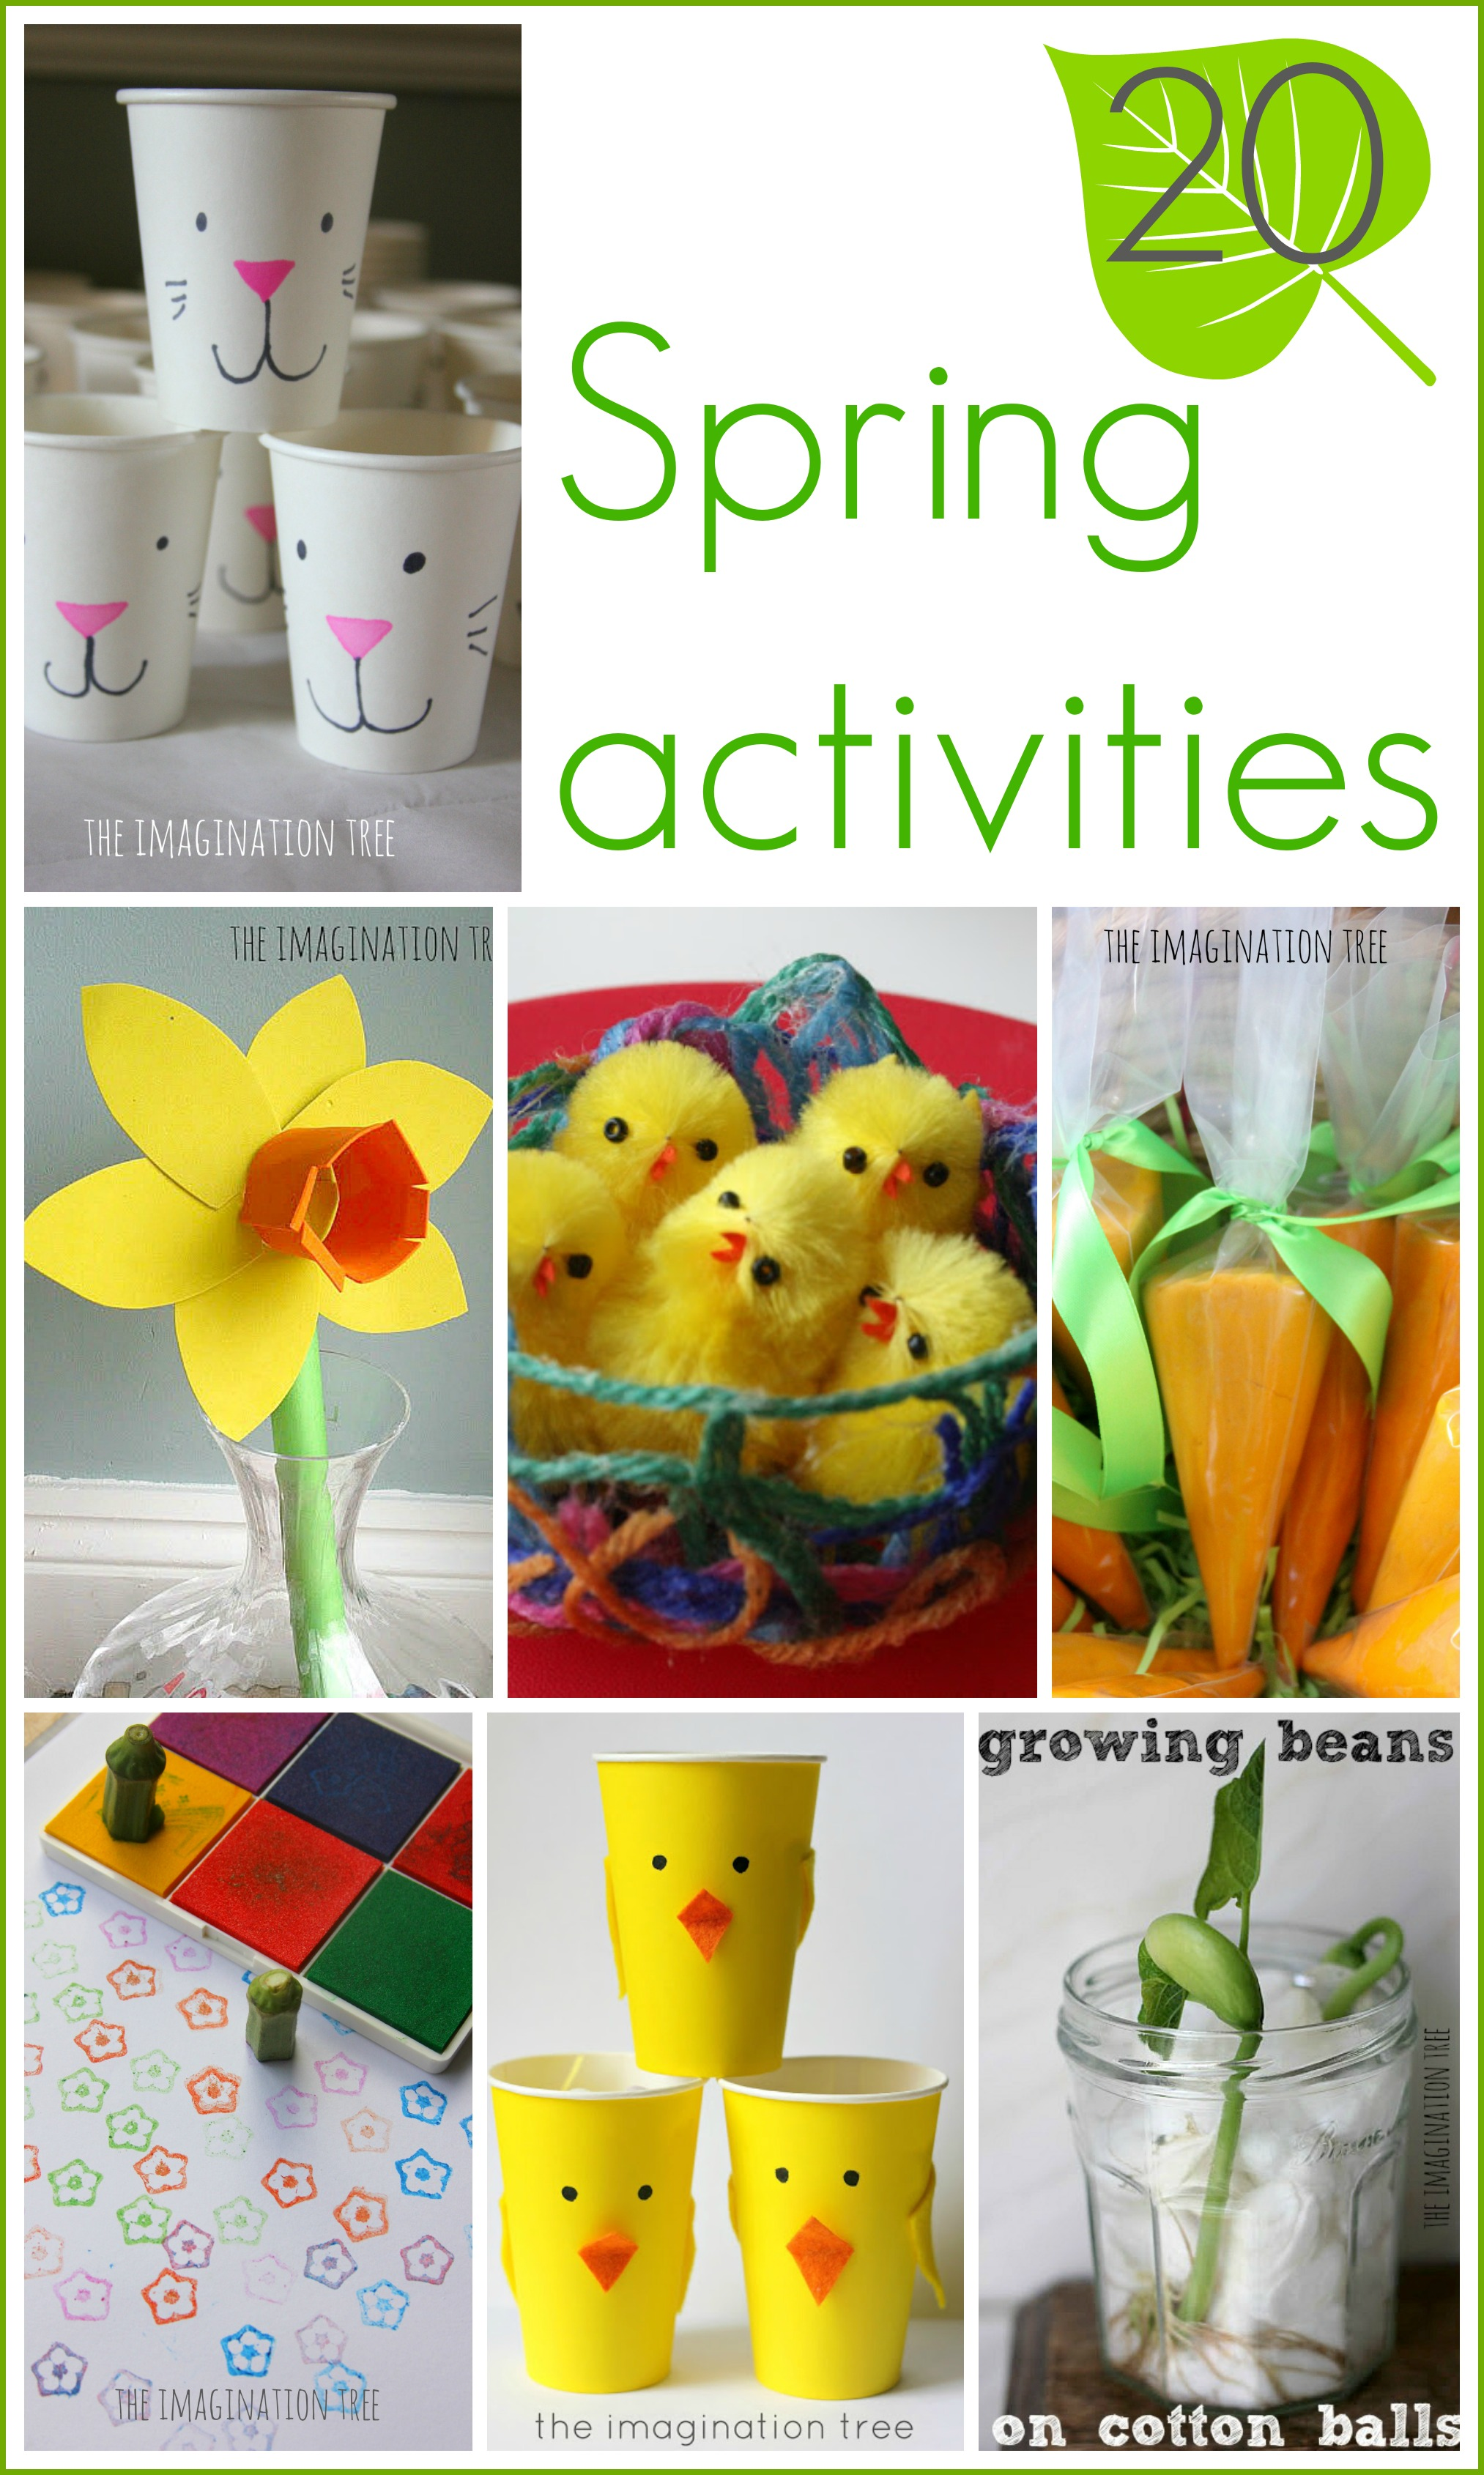 Spring Activities And Crafts For Kids on plant life cycle poem